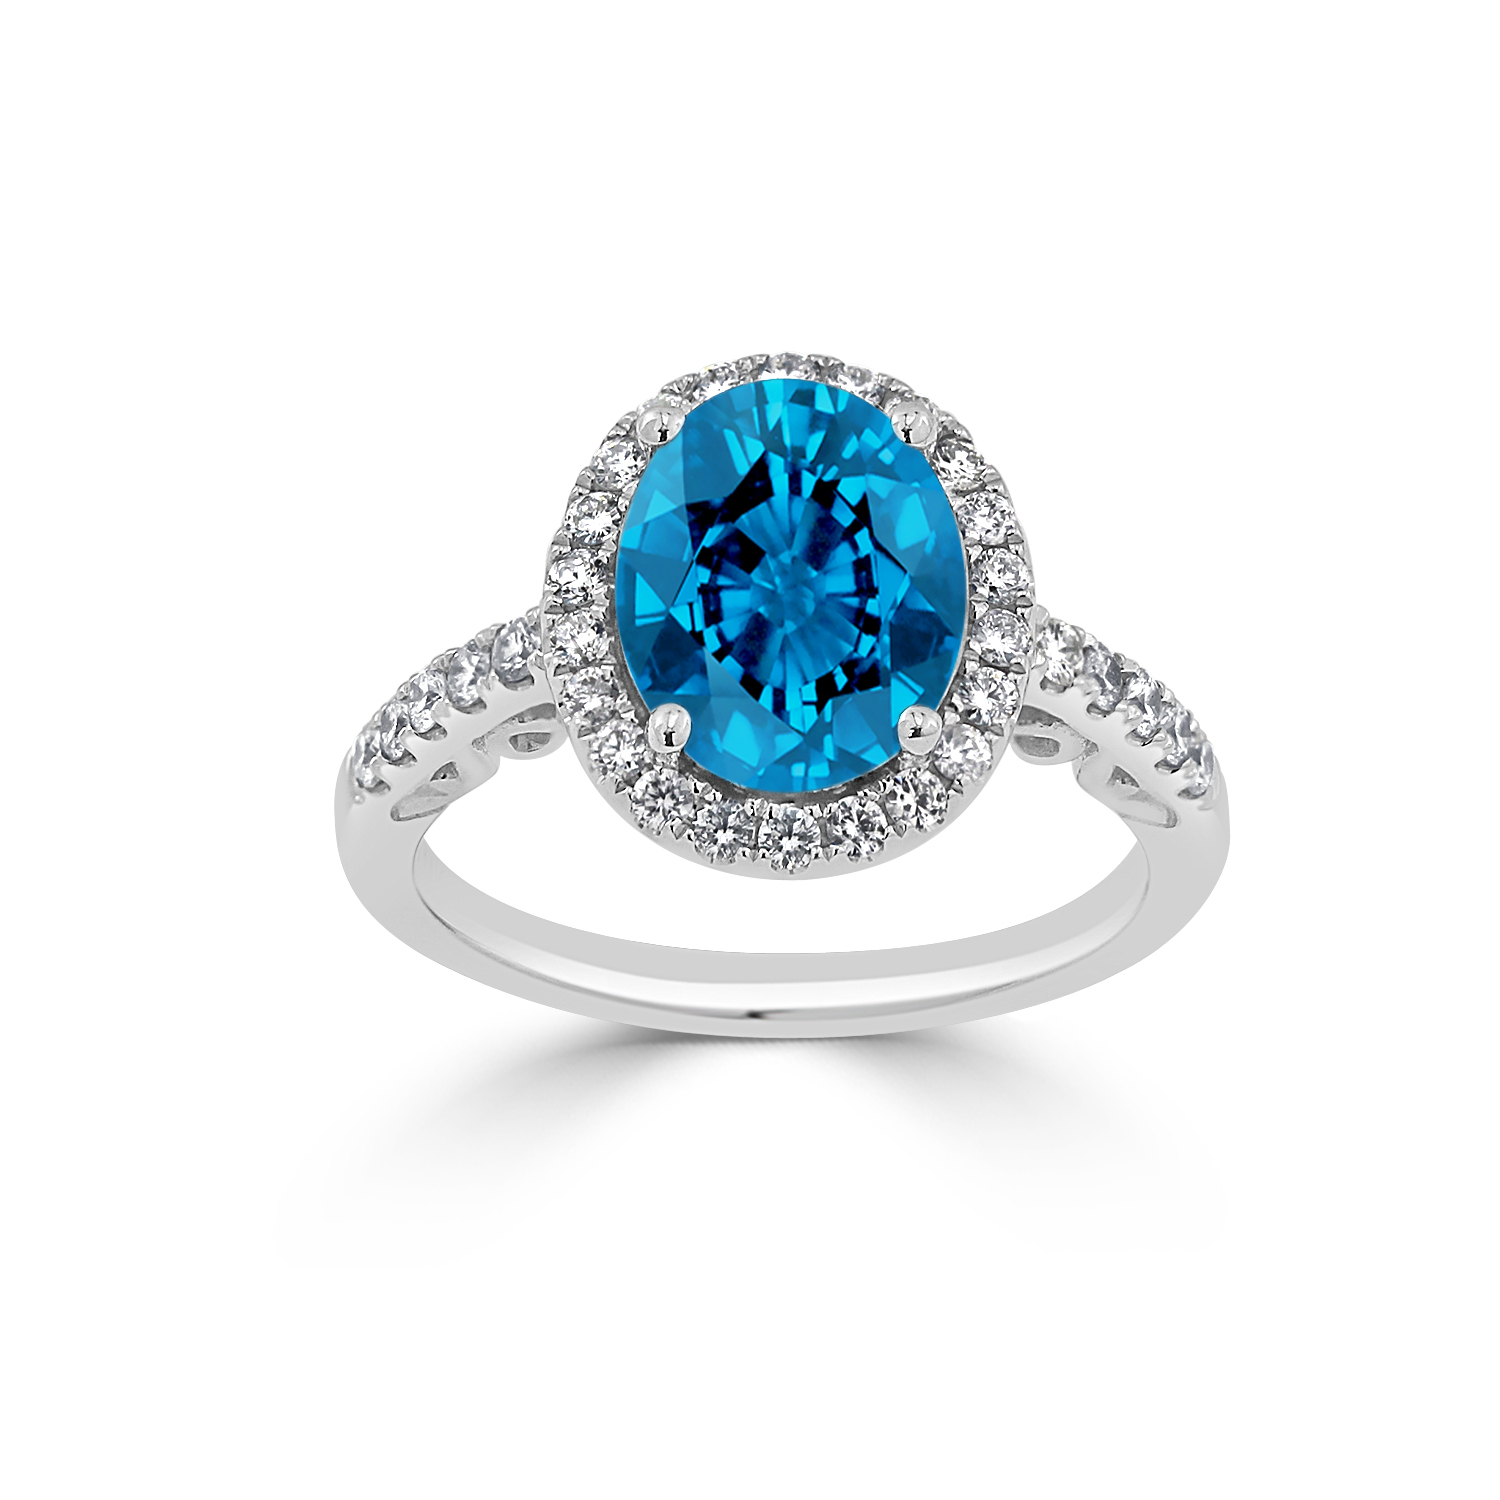 Halo Swiss Blue Topaz Diamond Ring in 14K White Gold with 2.90 carat Oval Swiss Blue Topaz